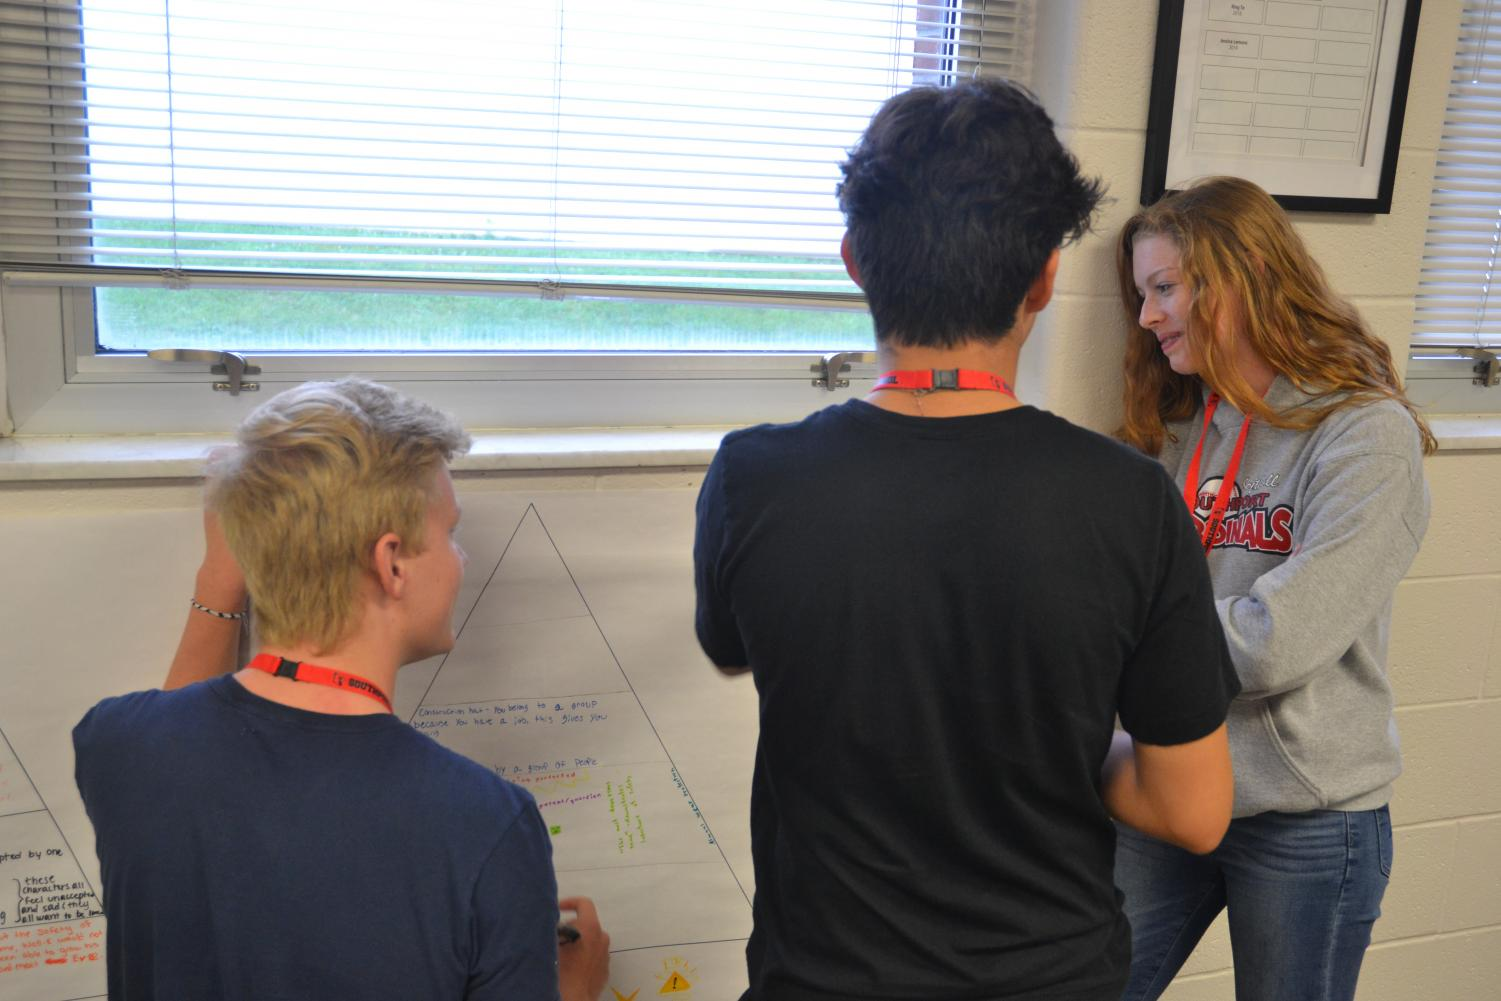 Students in English teacher Sam Hanley's G/T class do a poster activity around the classroom. The course content will soon be changed to fit the new pre-A.P. class.